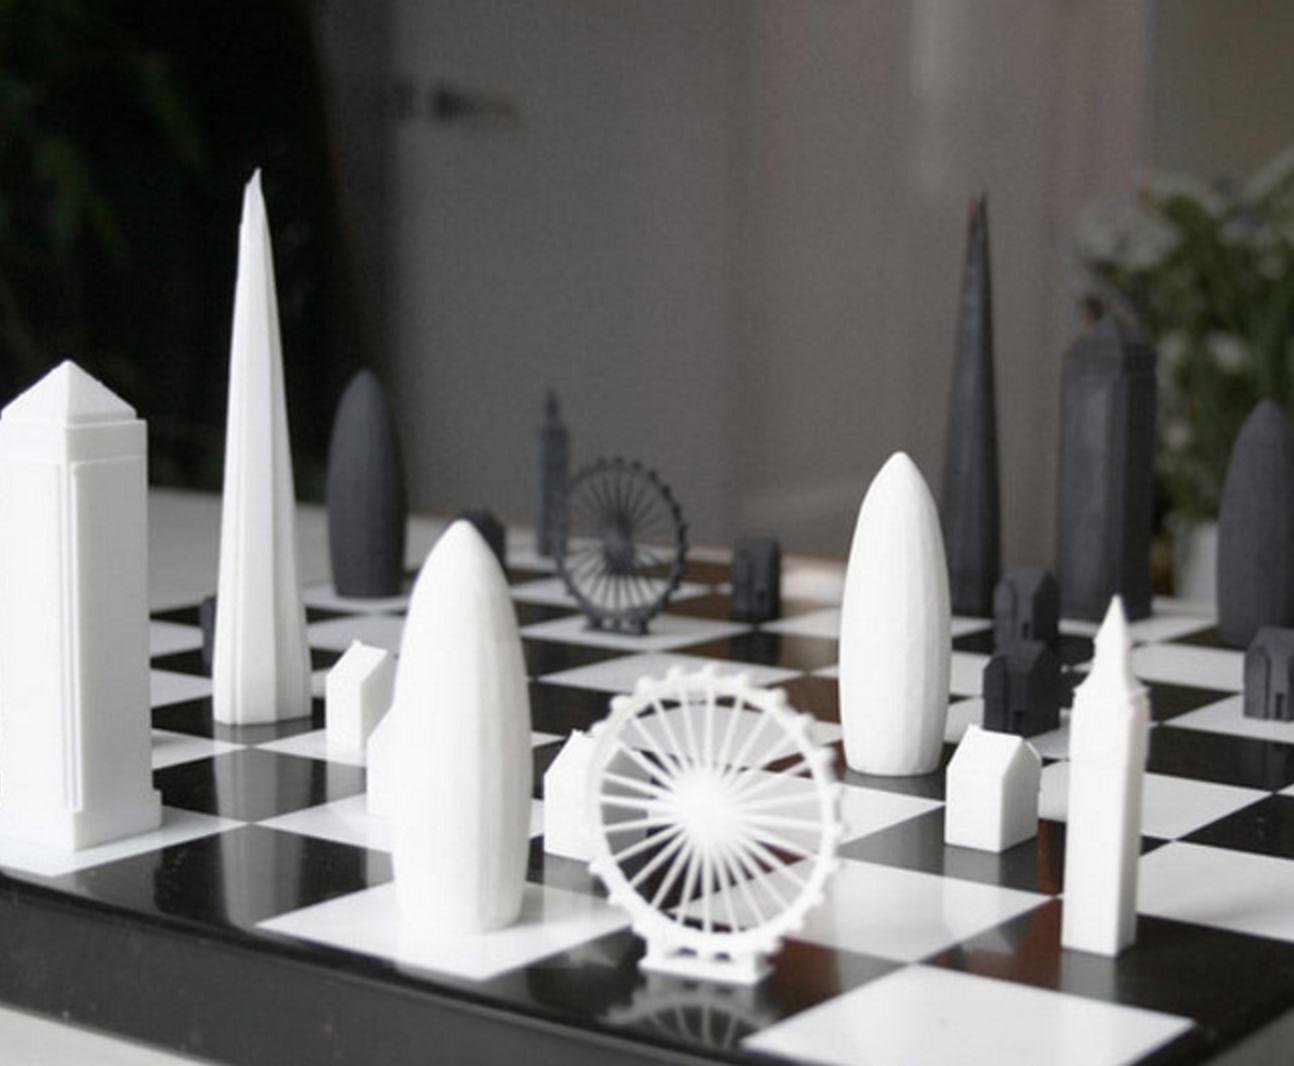 Cool Skyline Chess Set